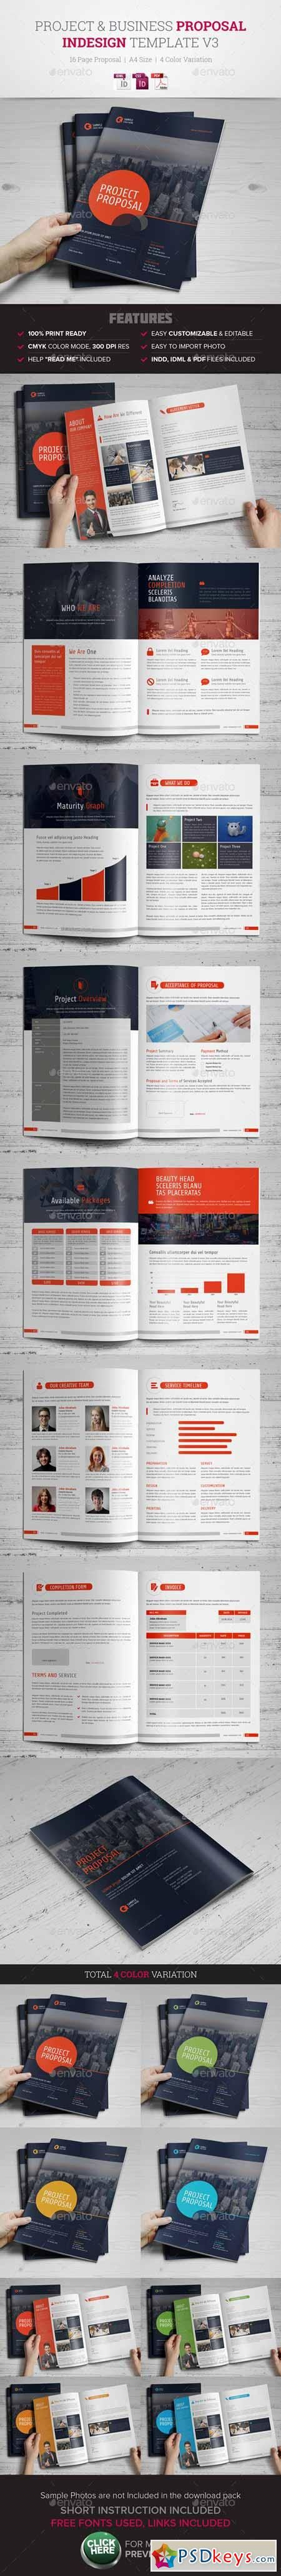 Project & Business Proposal Template v3 10499199